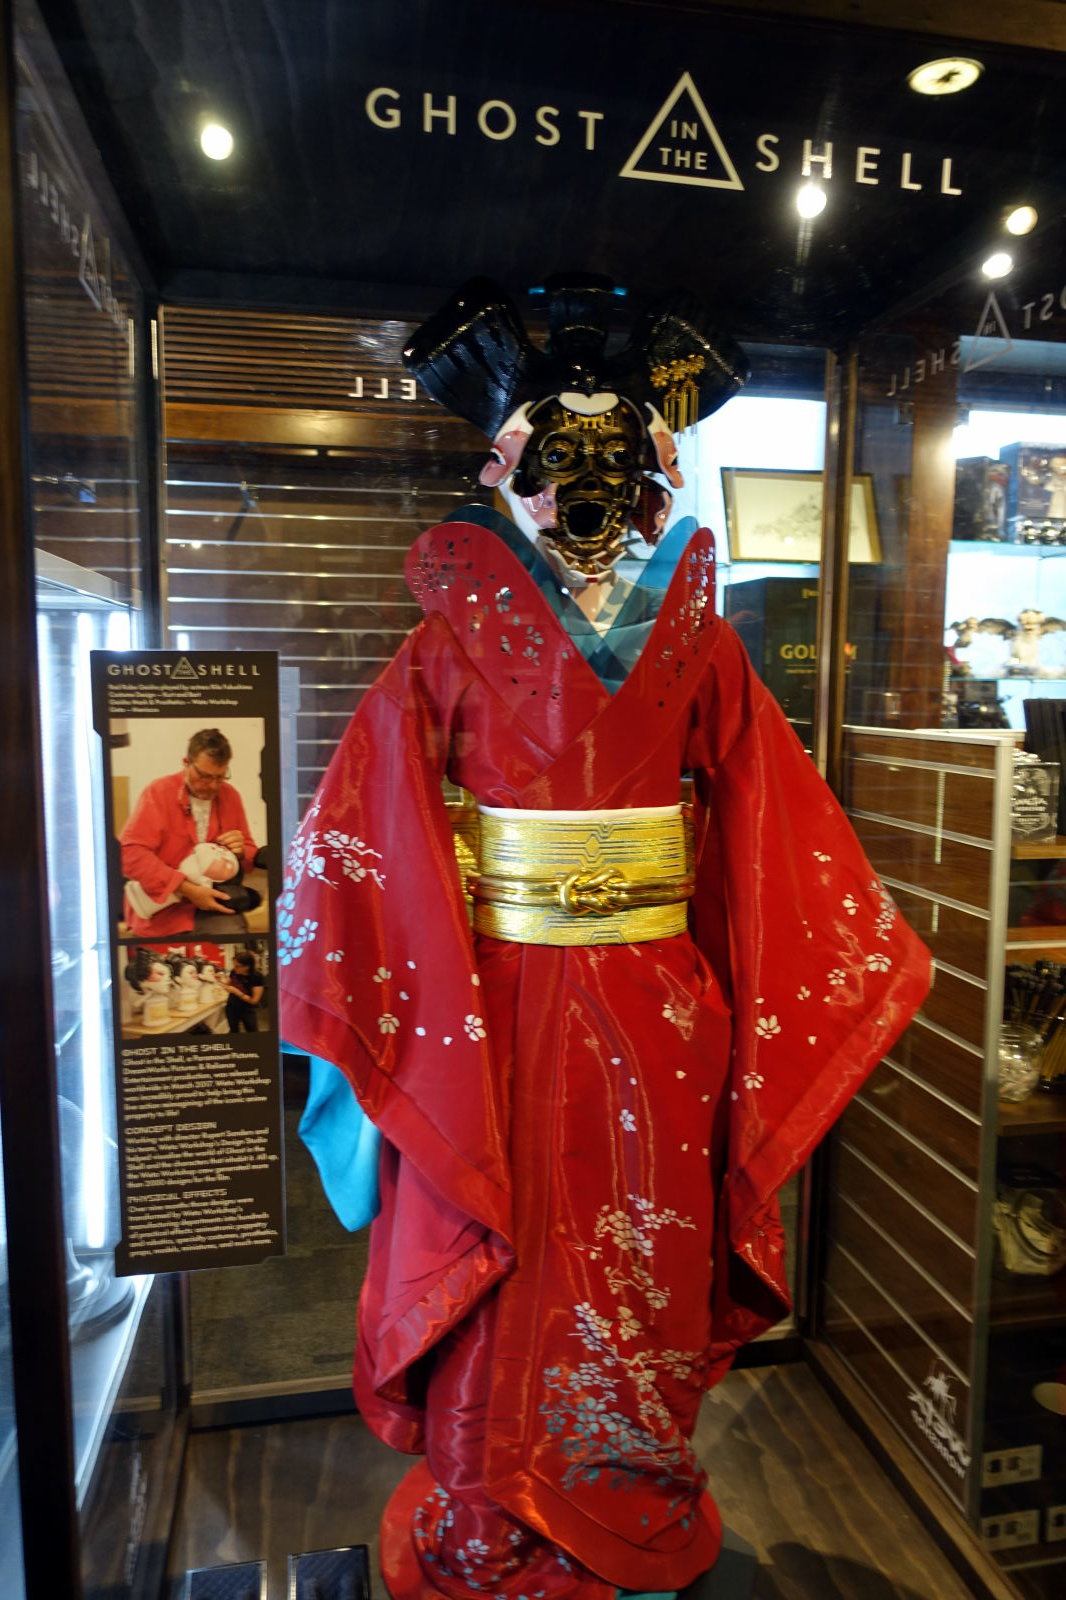 Display case with a model from Ghost in The Shell wearing kimono.